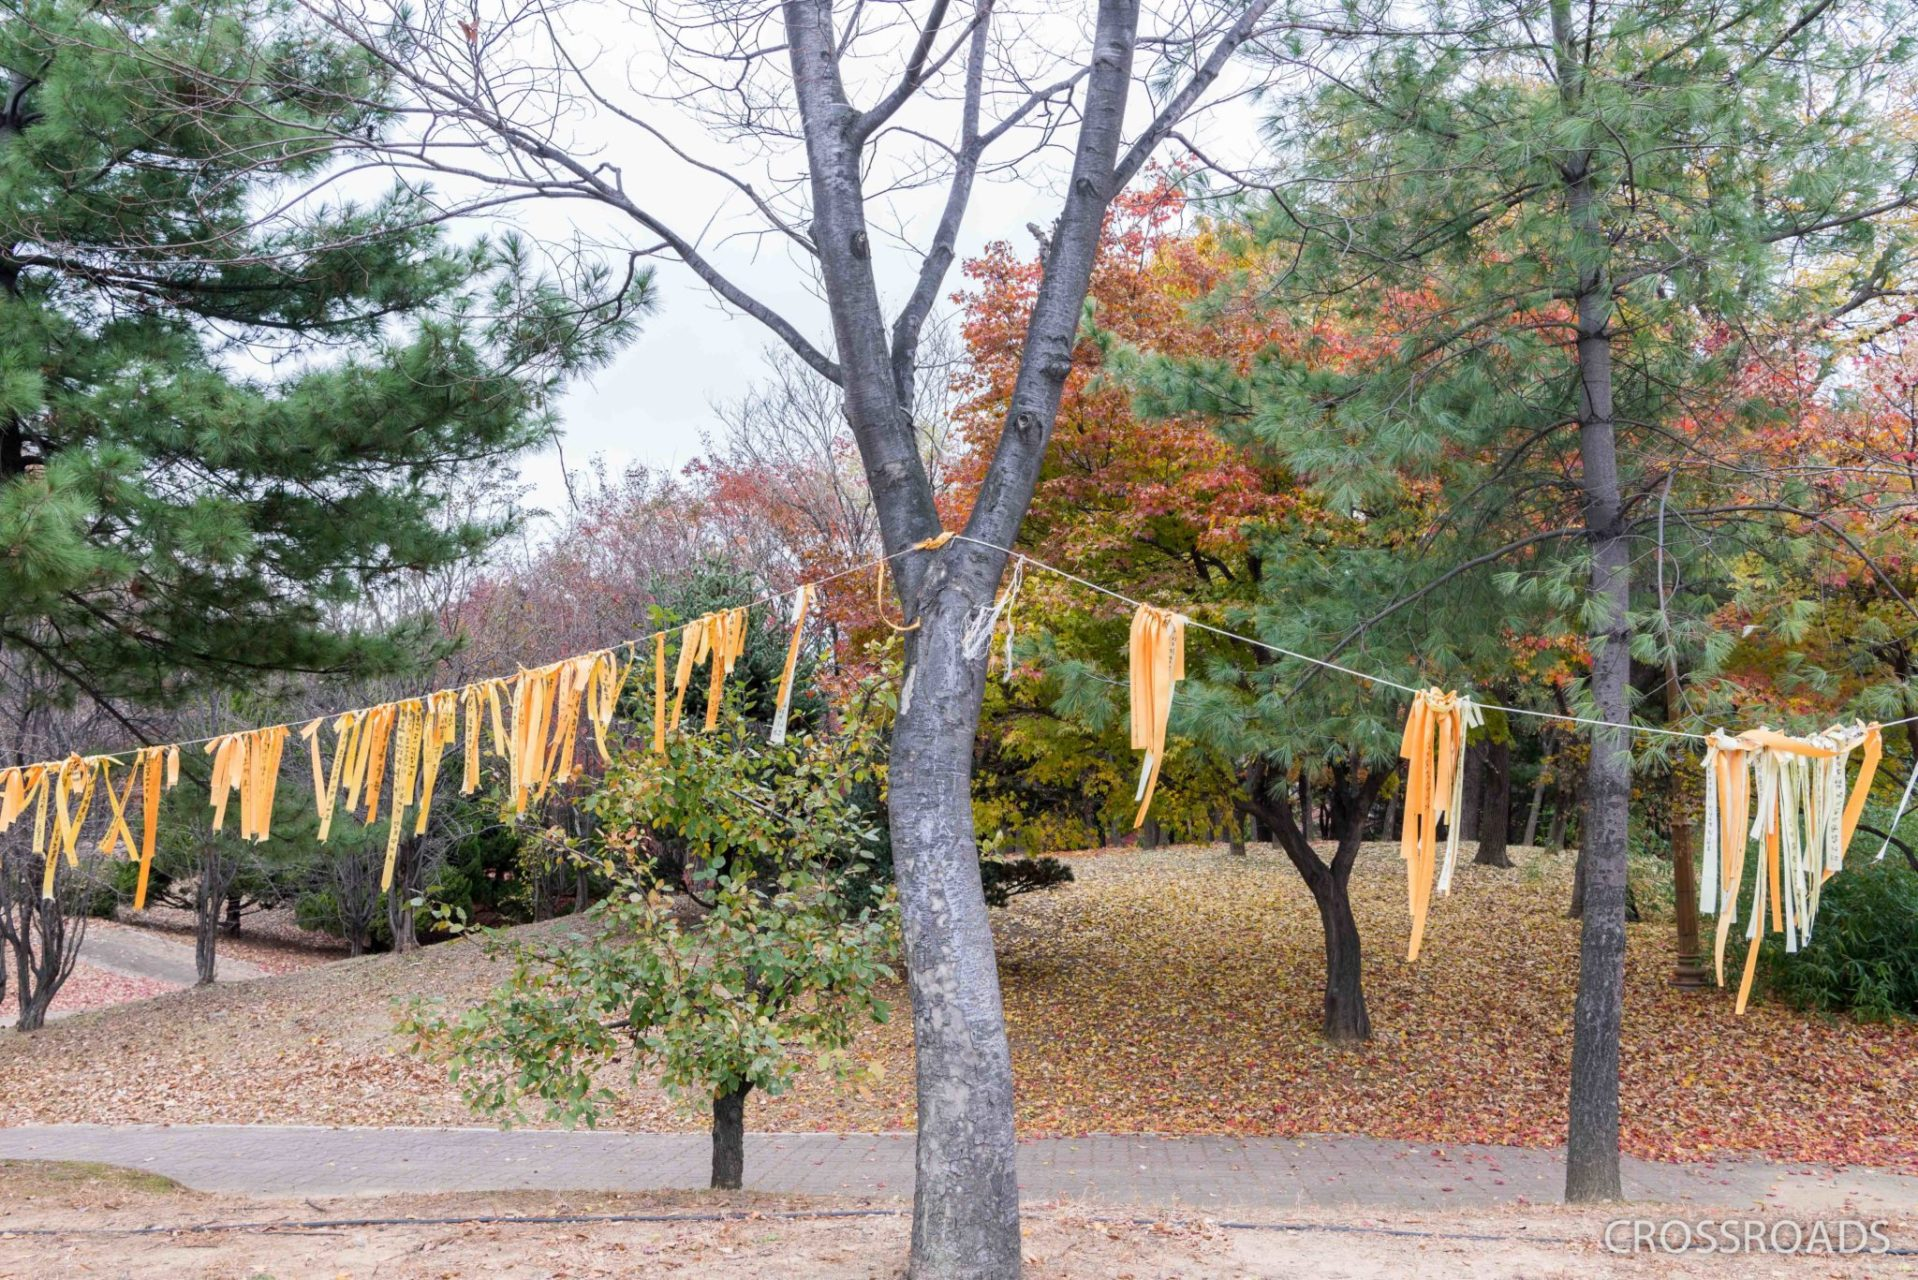 Remembrance ribbons are tried to trees near the Memorial Hall. The hall was dismantled after a memorial service on the 4th anniversary of the Sewol's sinking.